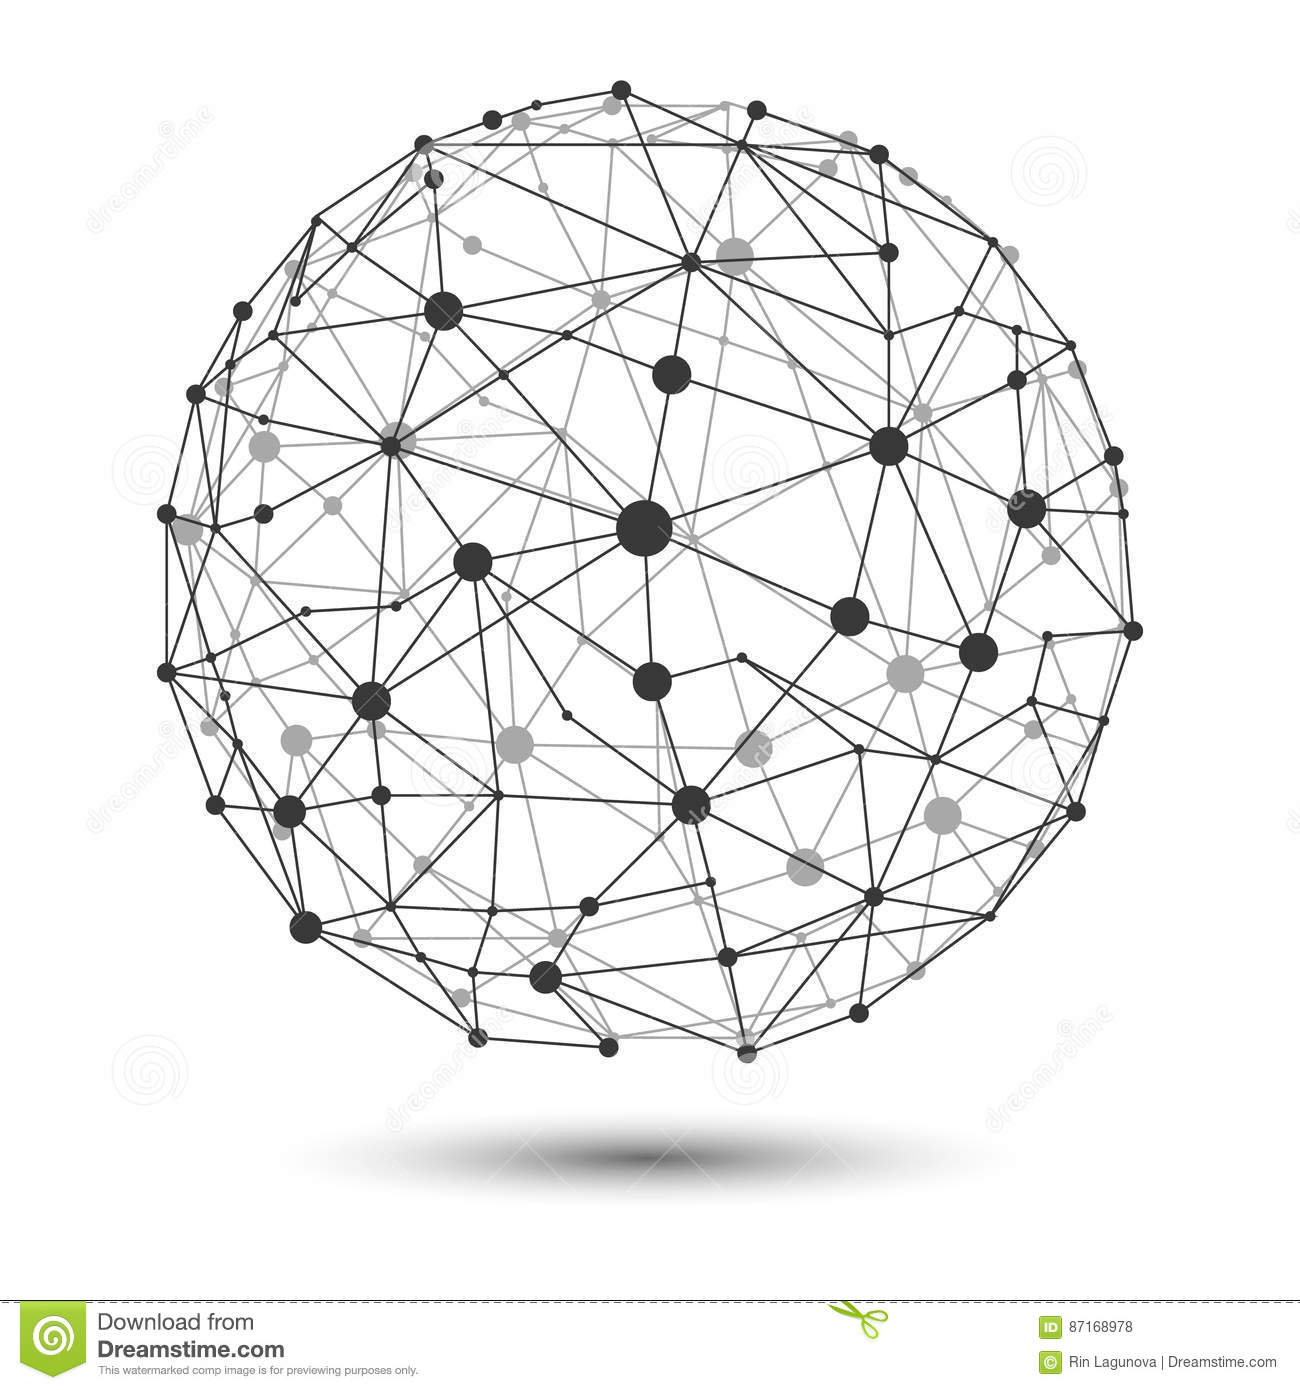 VECTOR Illustration: Wire Frame Connecting Globe Network